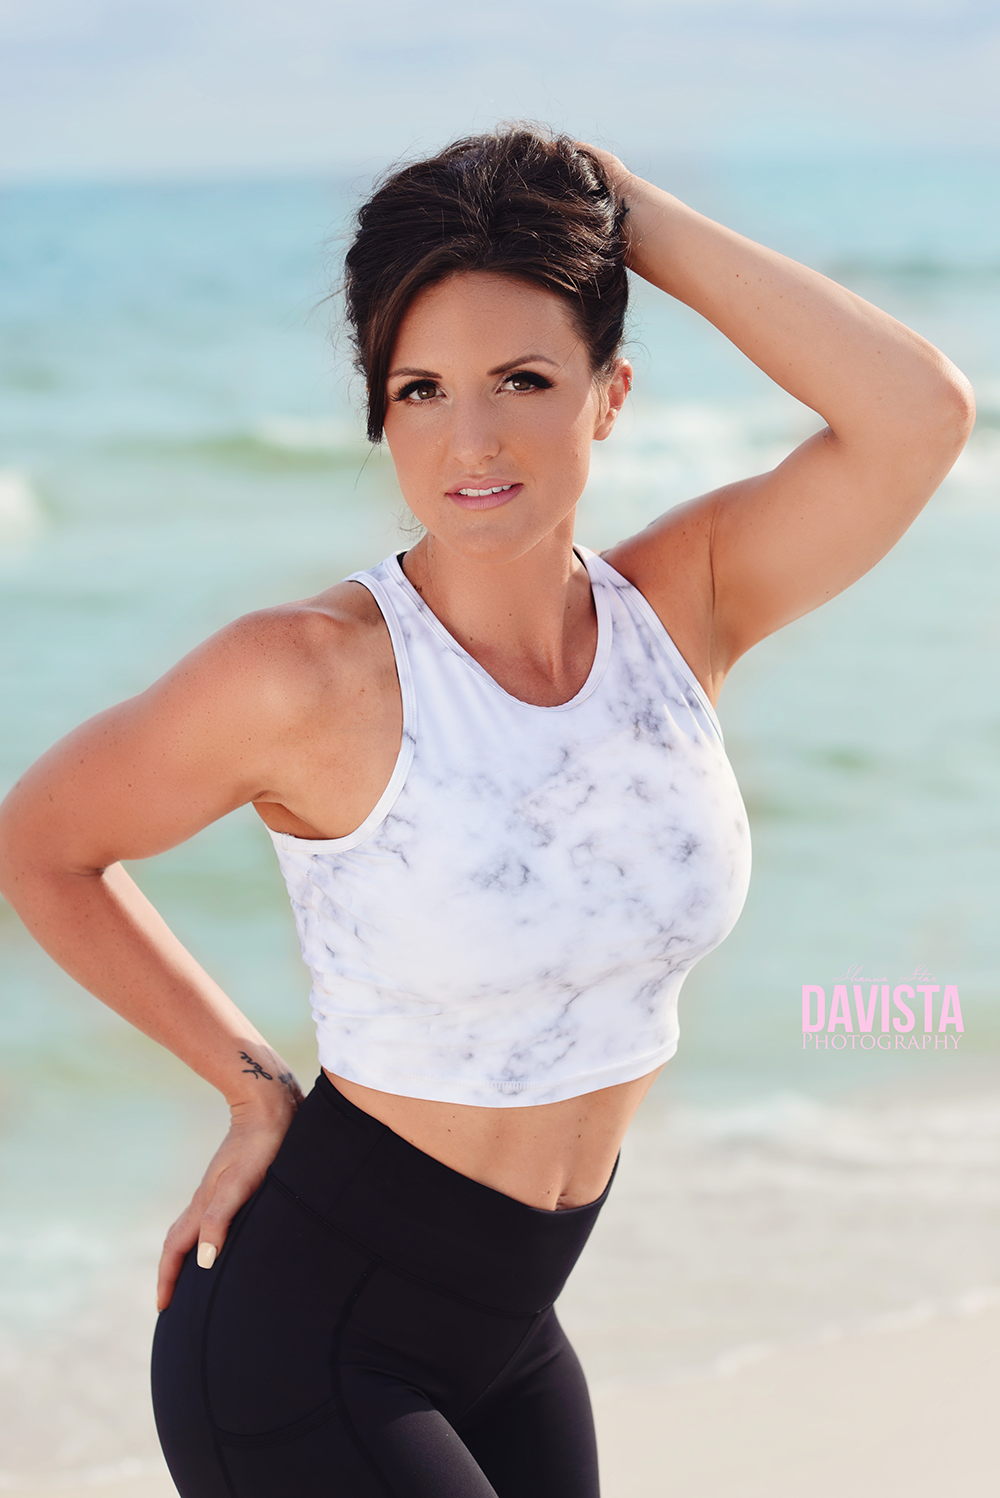 Panama City beach fitness photoshoot